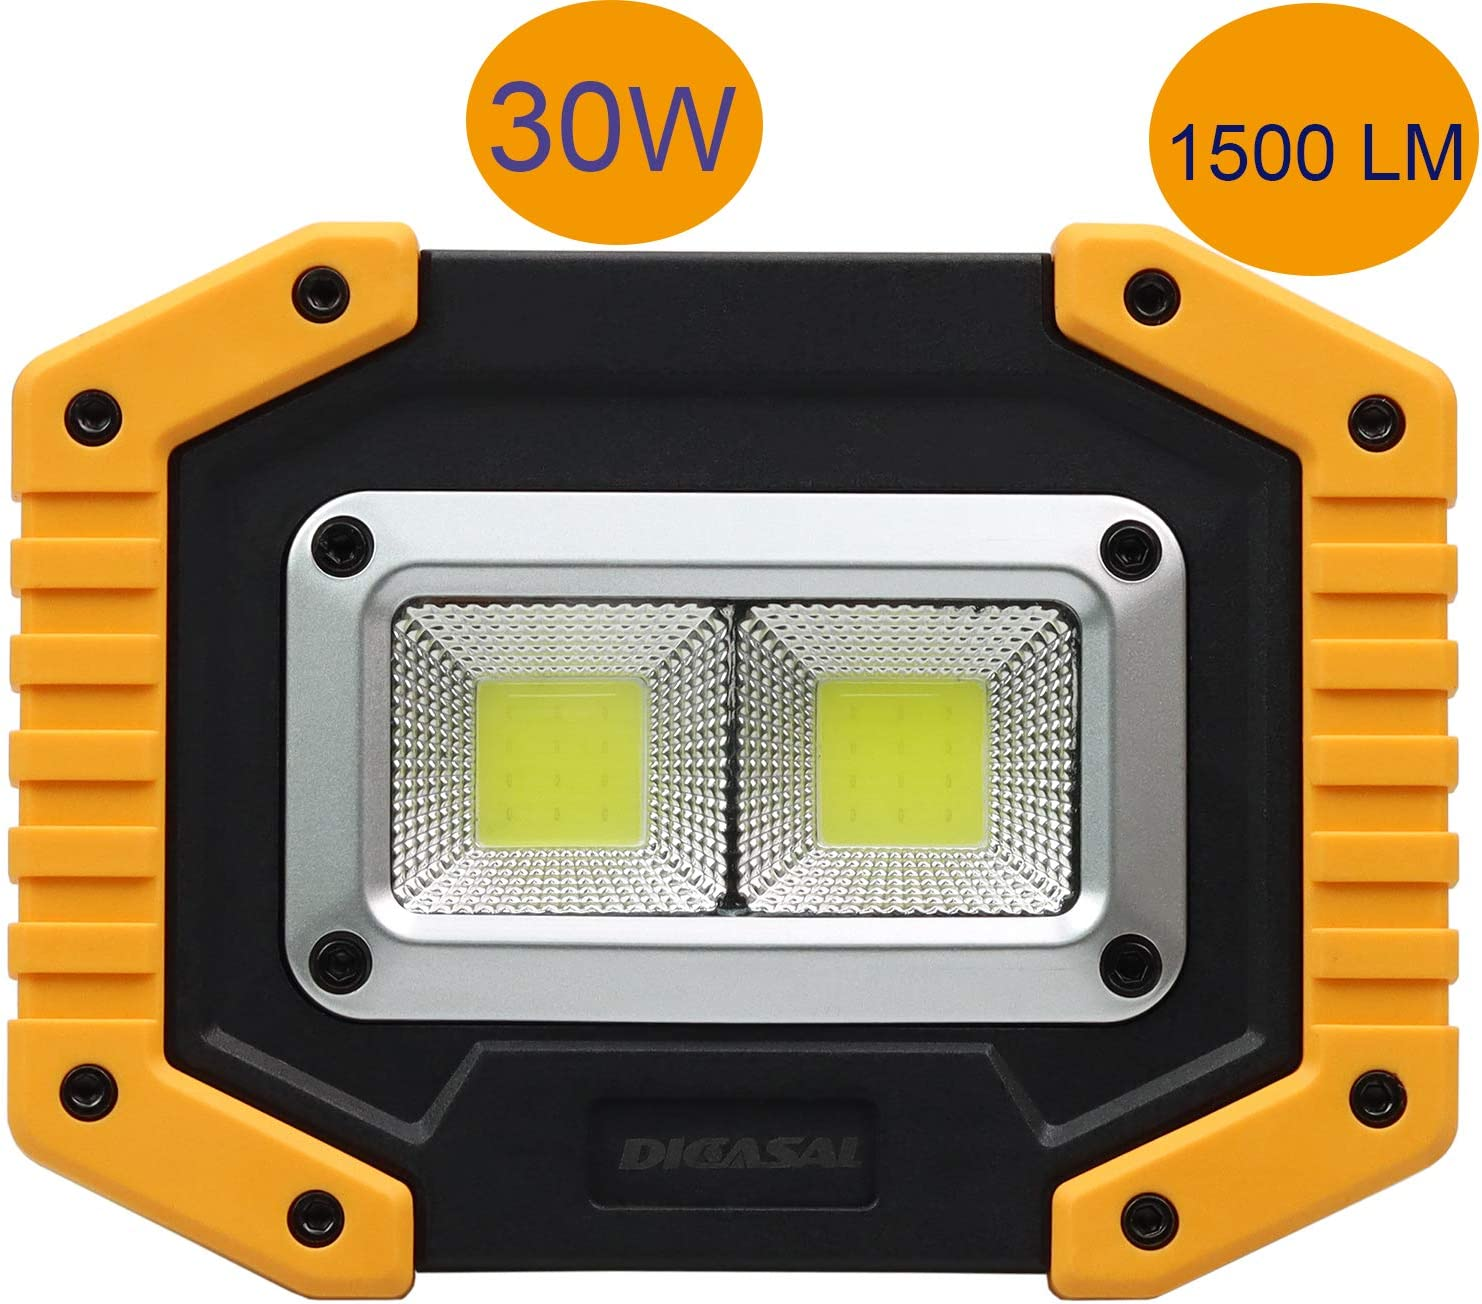 Portable Floodlight with USB Waterproof for Outdoor Hiking DICASAL 30W Rechargeable Floodlight LED Work Light Camping Emergency Security Lights 1 Pack